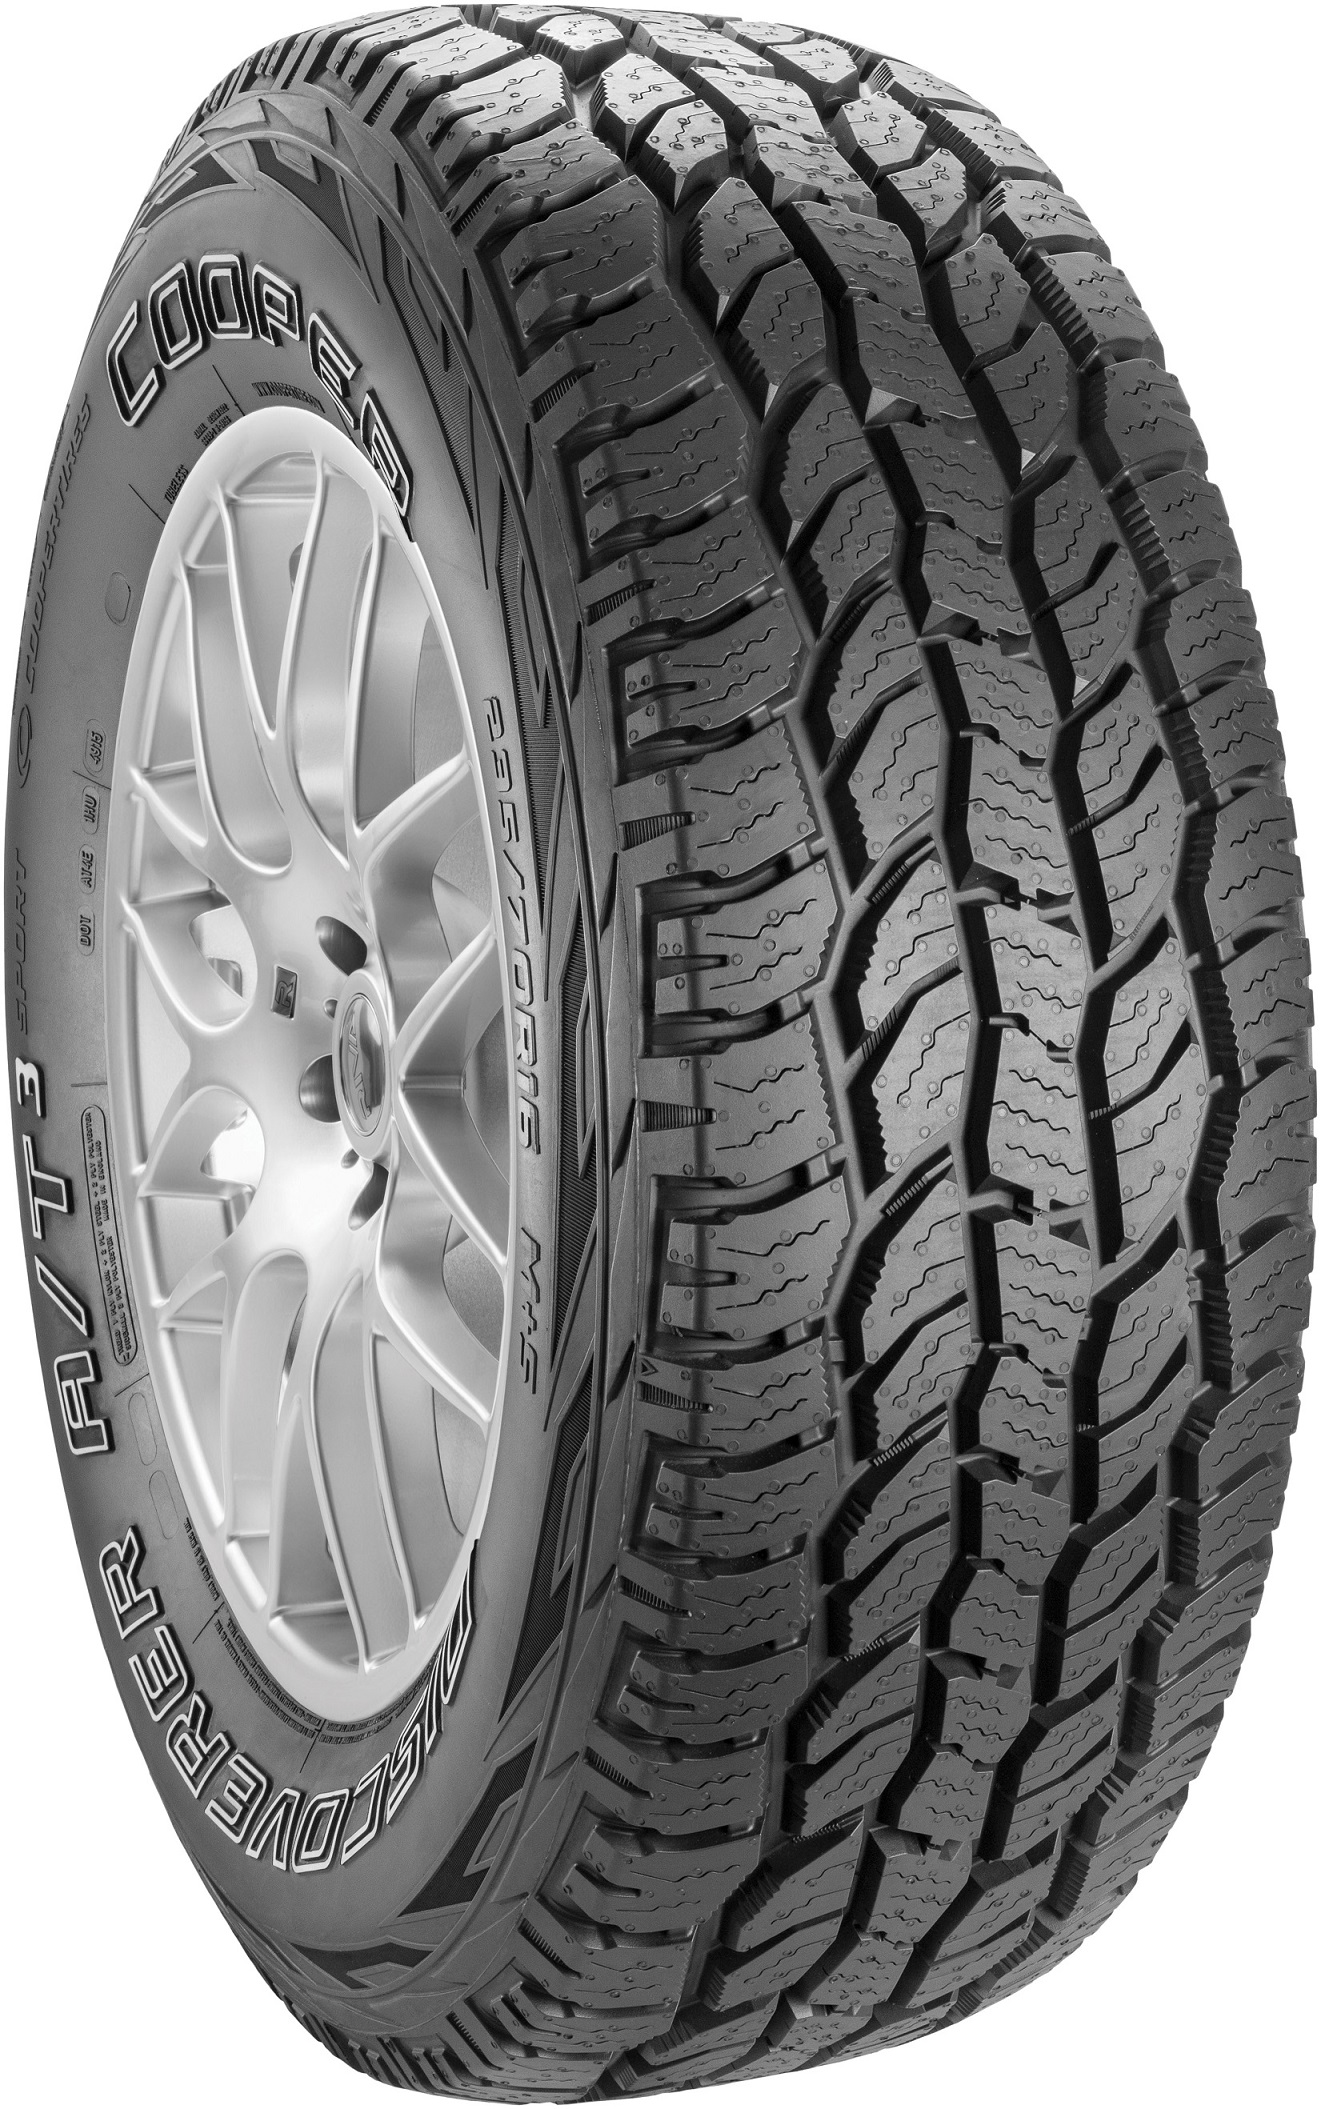 Gomme Nuove Cooper Tyres 225/60 R17 99H ZEON 4XS SPORT pneumatici nuovi Estivo